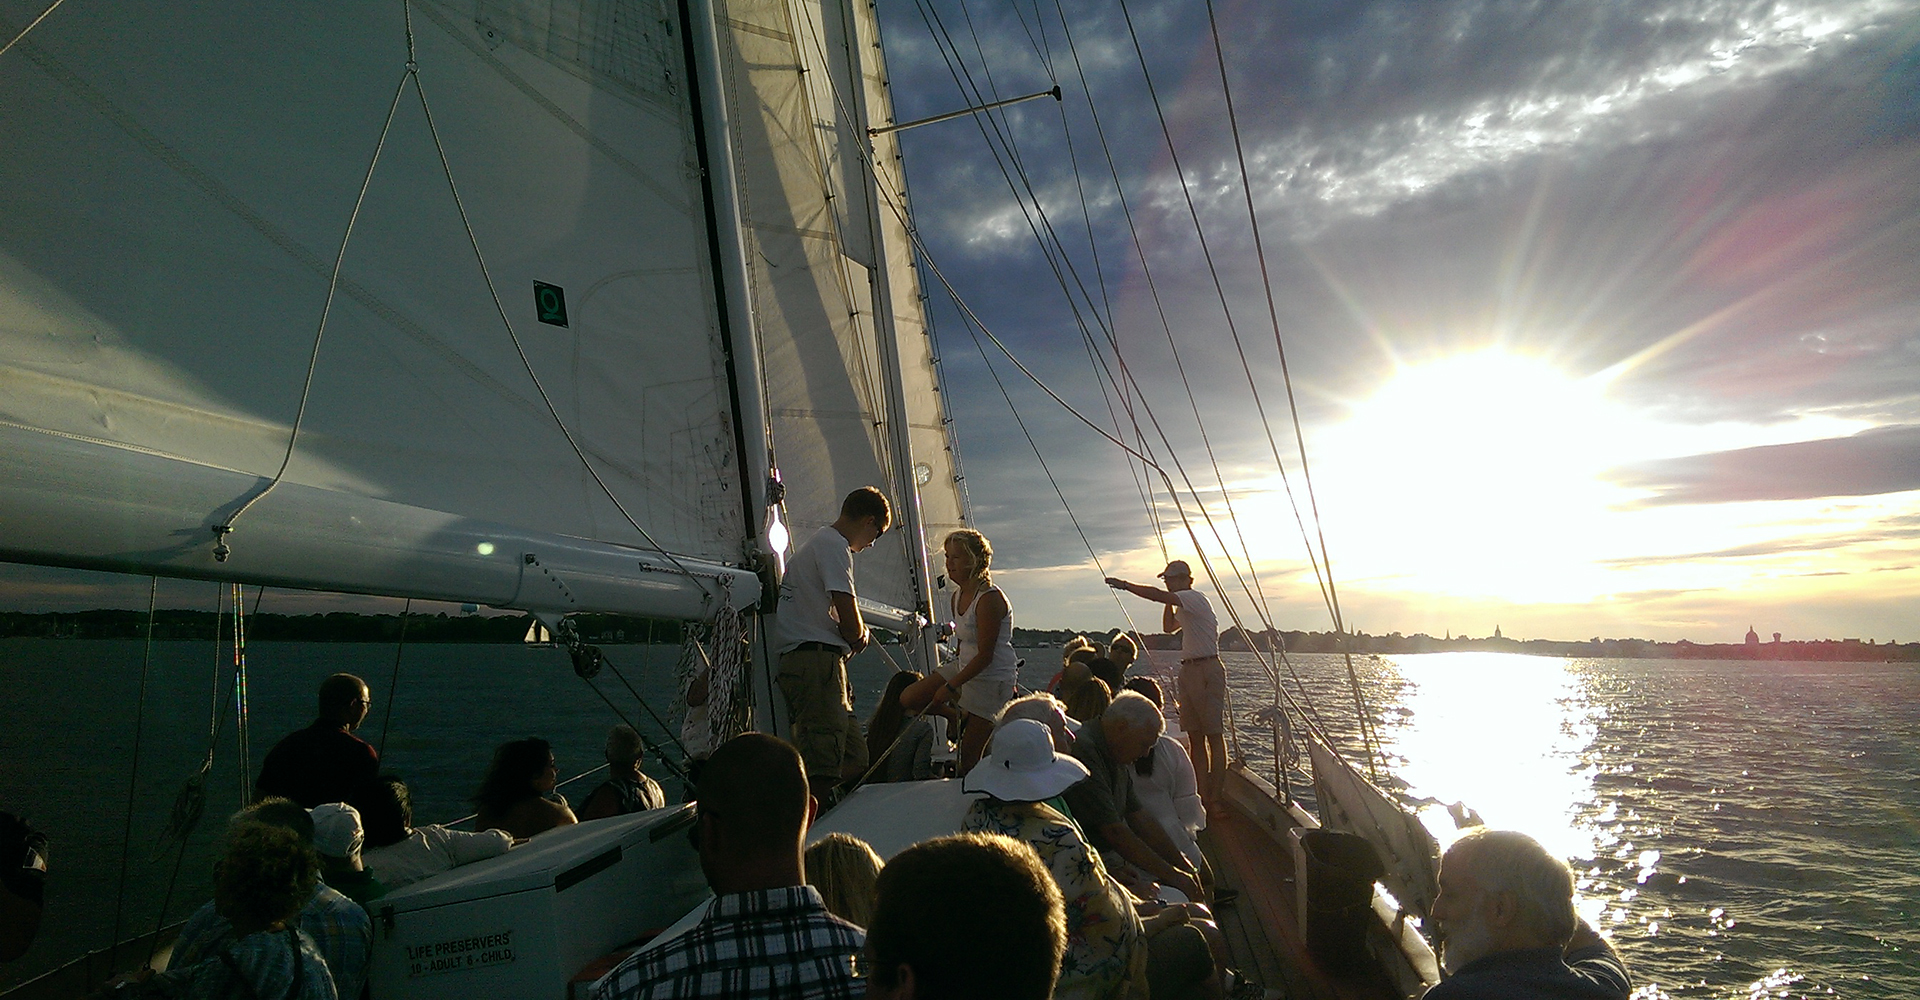 Guests on board sailing directly into brilliant sunset